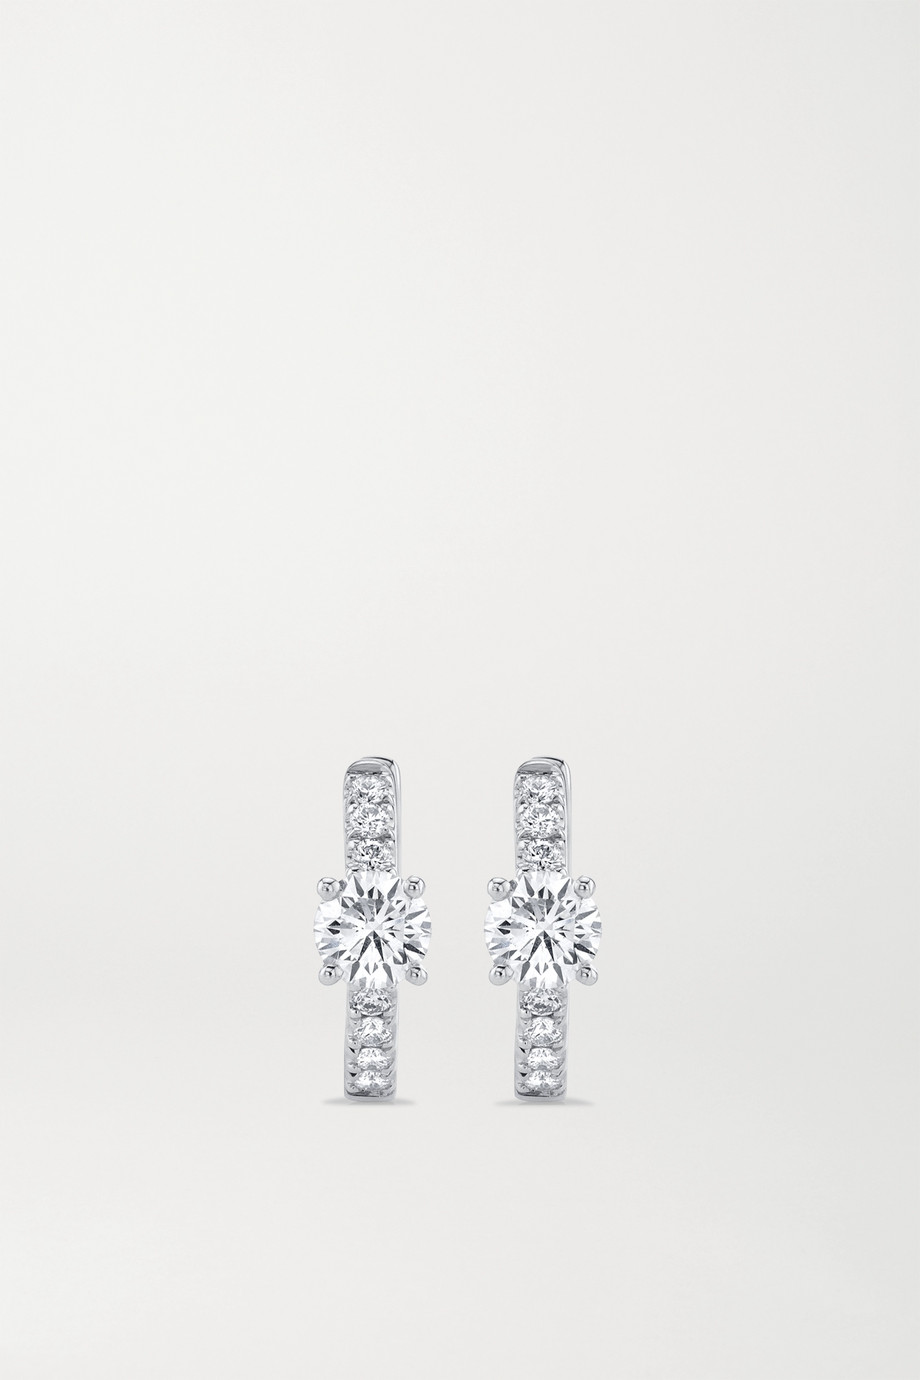 Anita Ko Huggies 18-karat white gold diamond hoop earrings